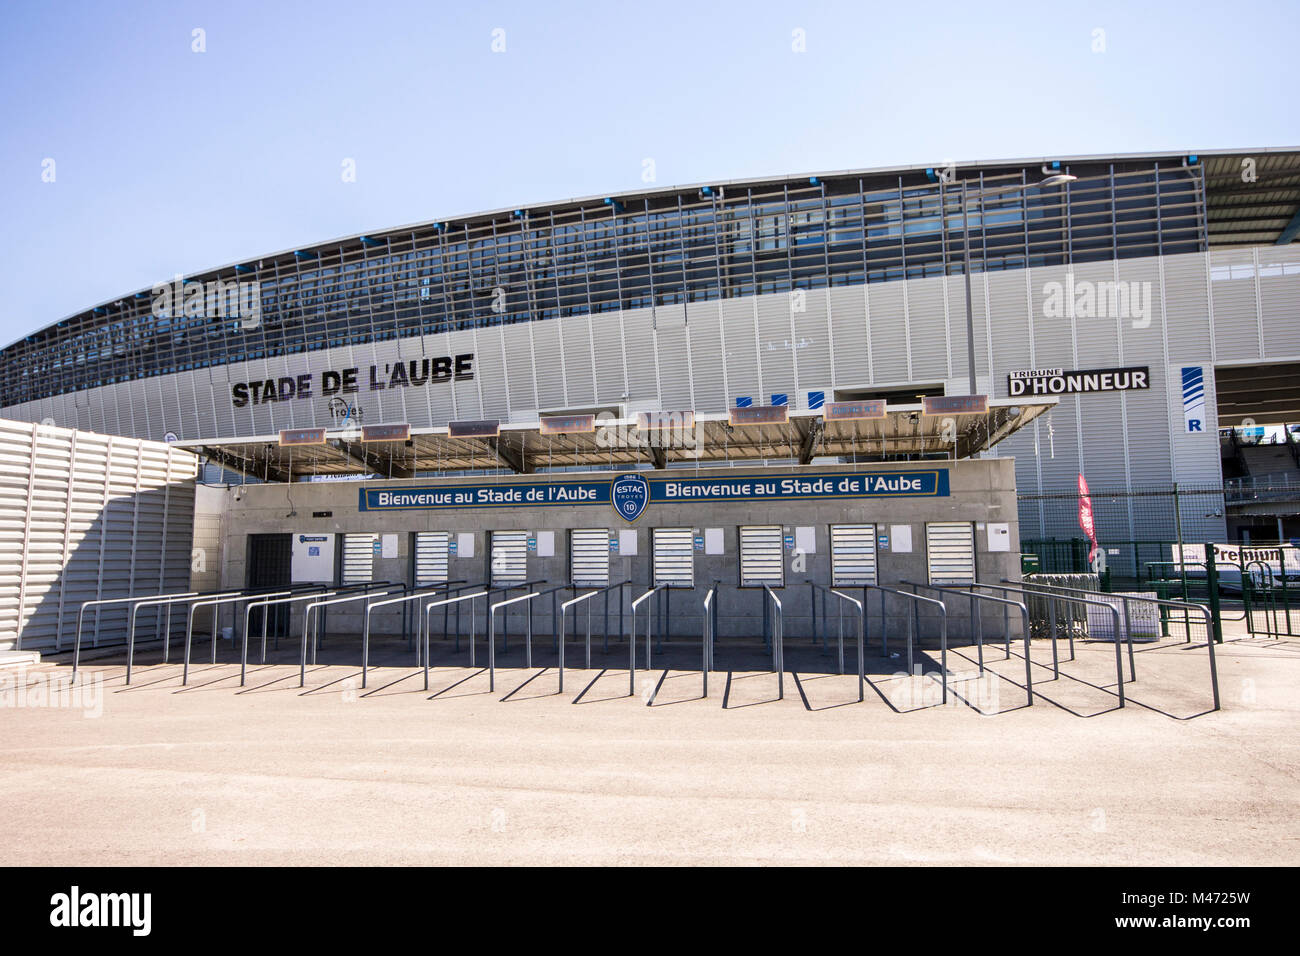 The Stade de l'Aube, a multi-use stadium in Troyes, France, currently used mostly for football matches by Troyes - Stock Image